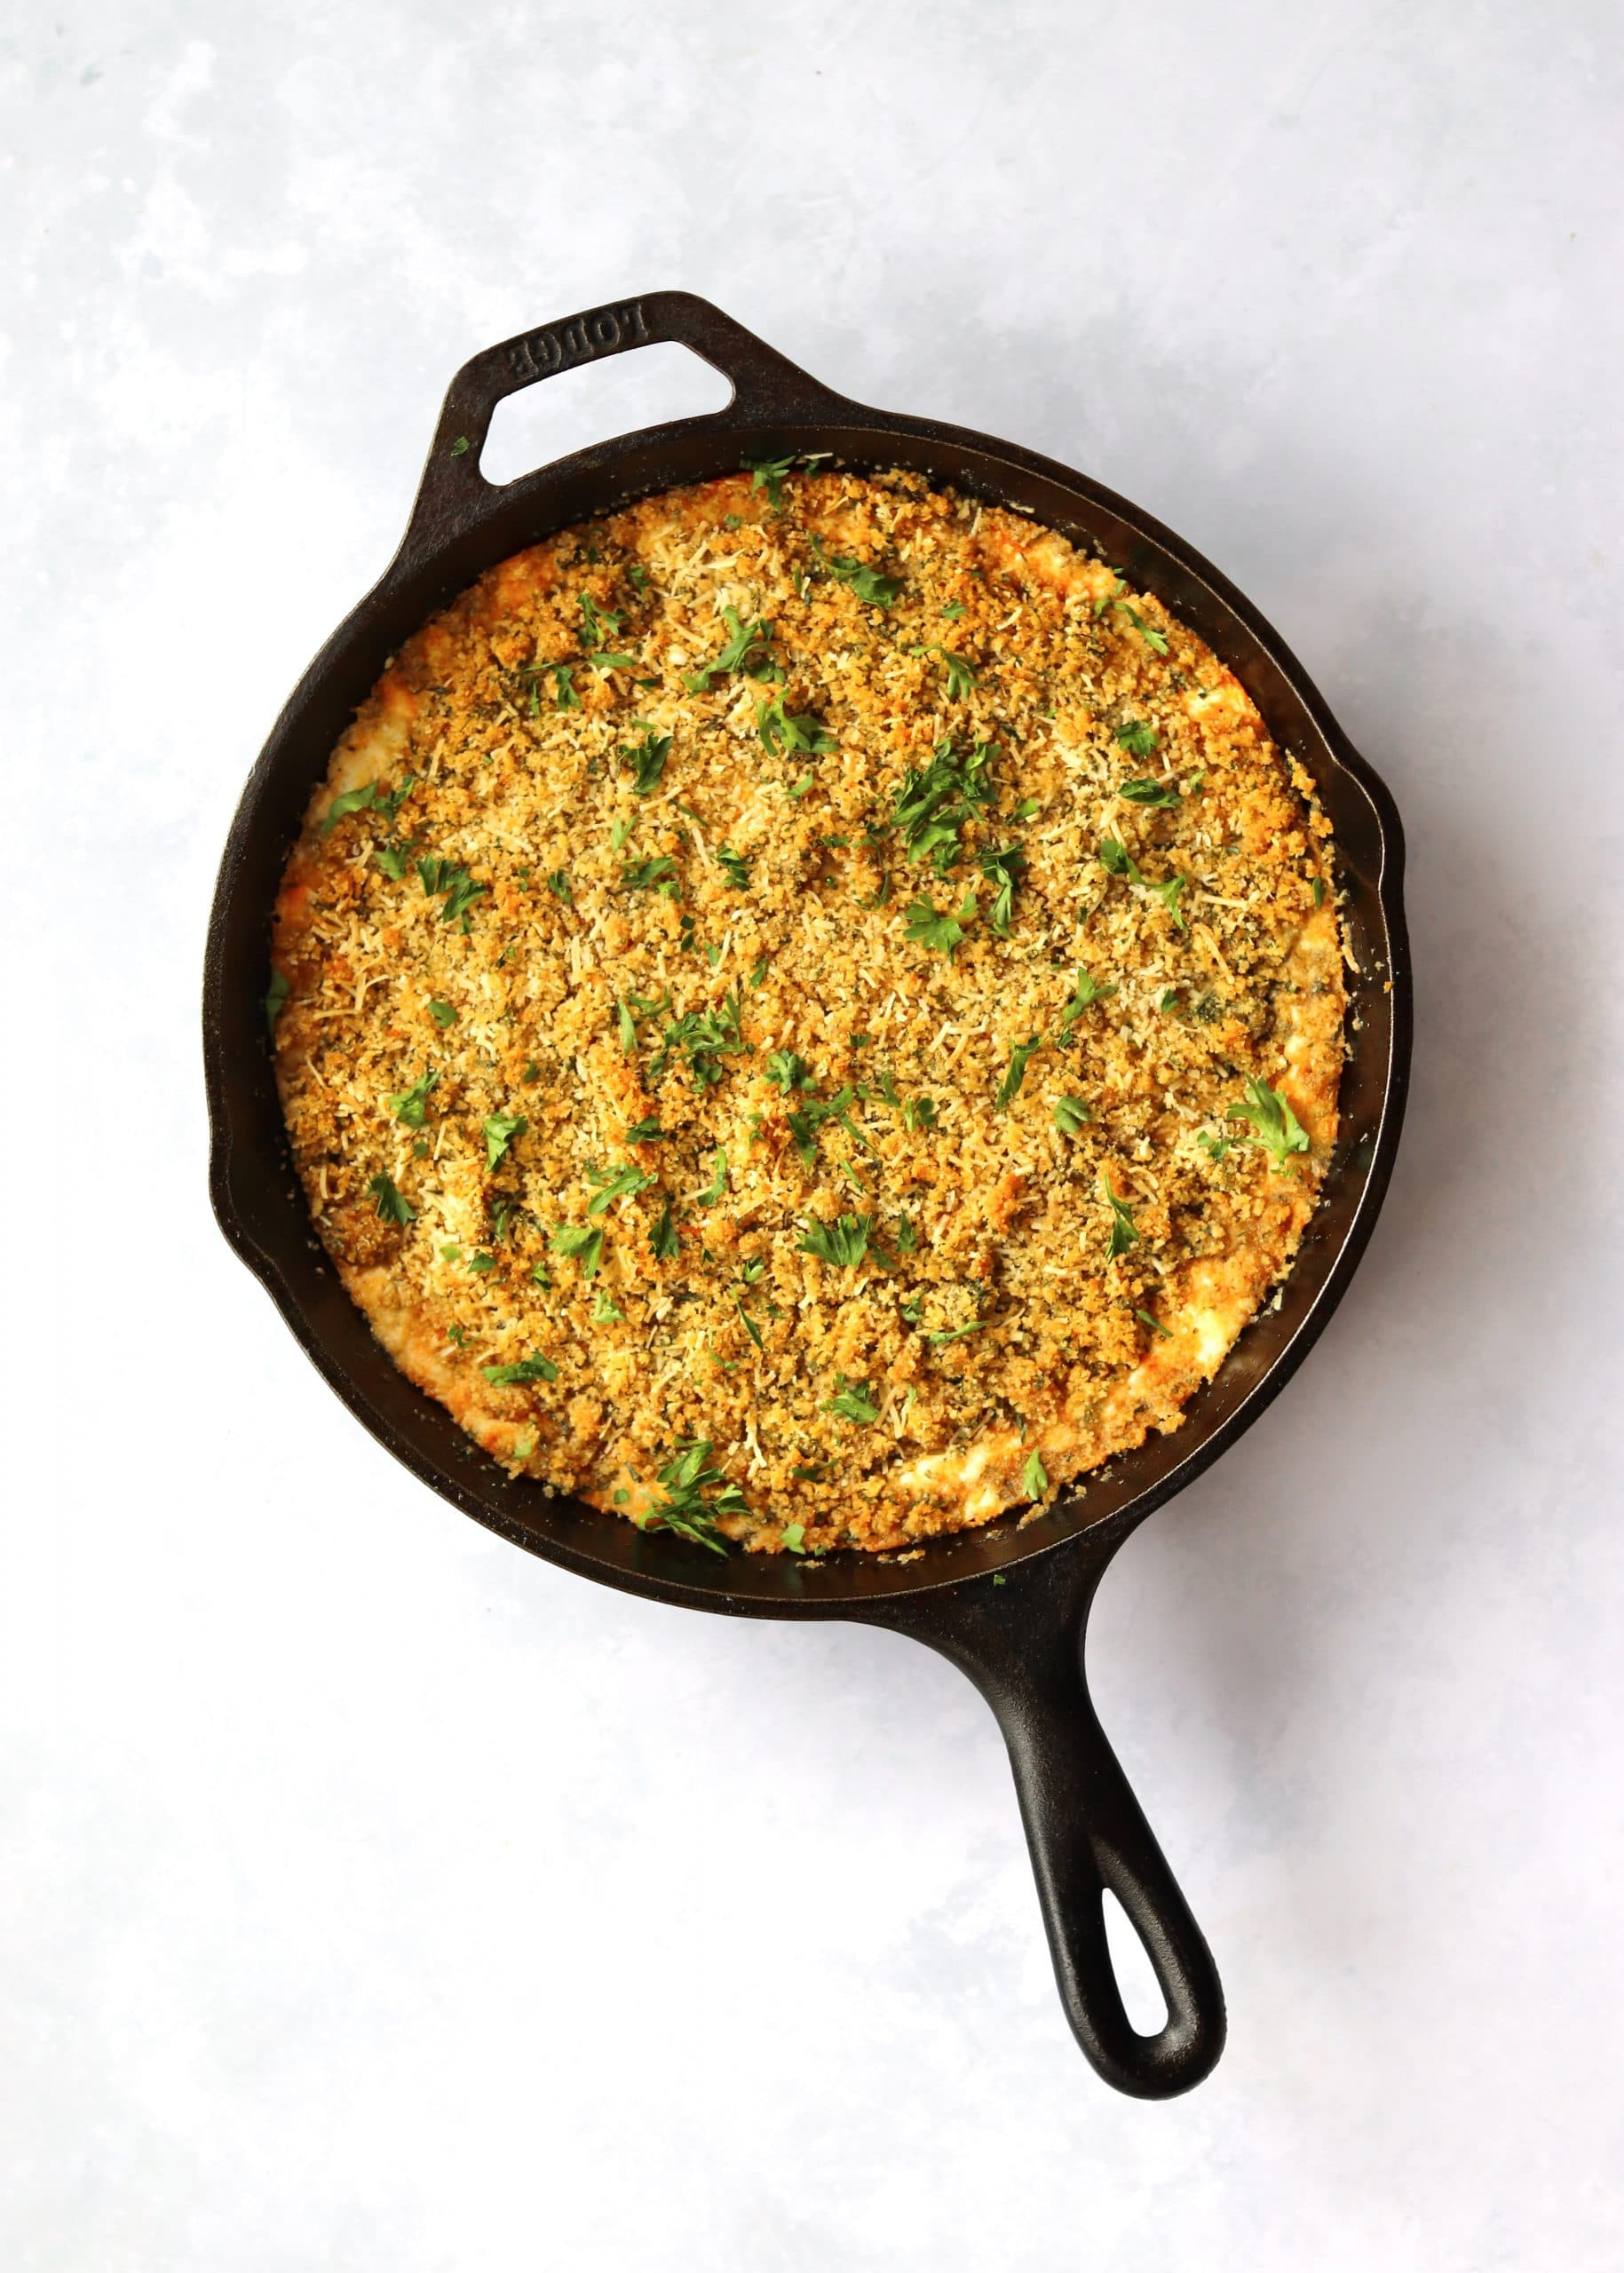 Jalapeno Popper Dip in cast iron skillet with parsley